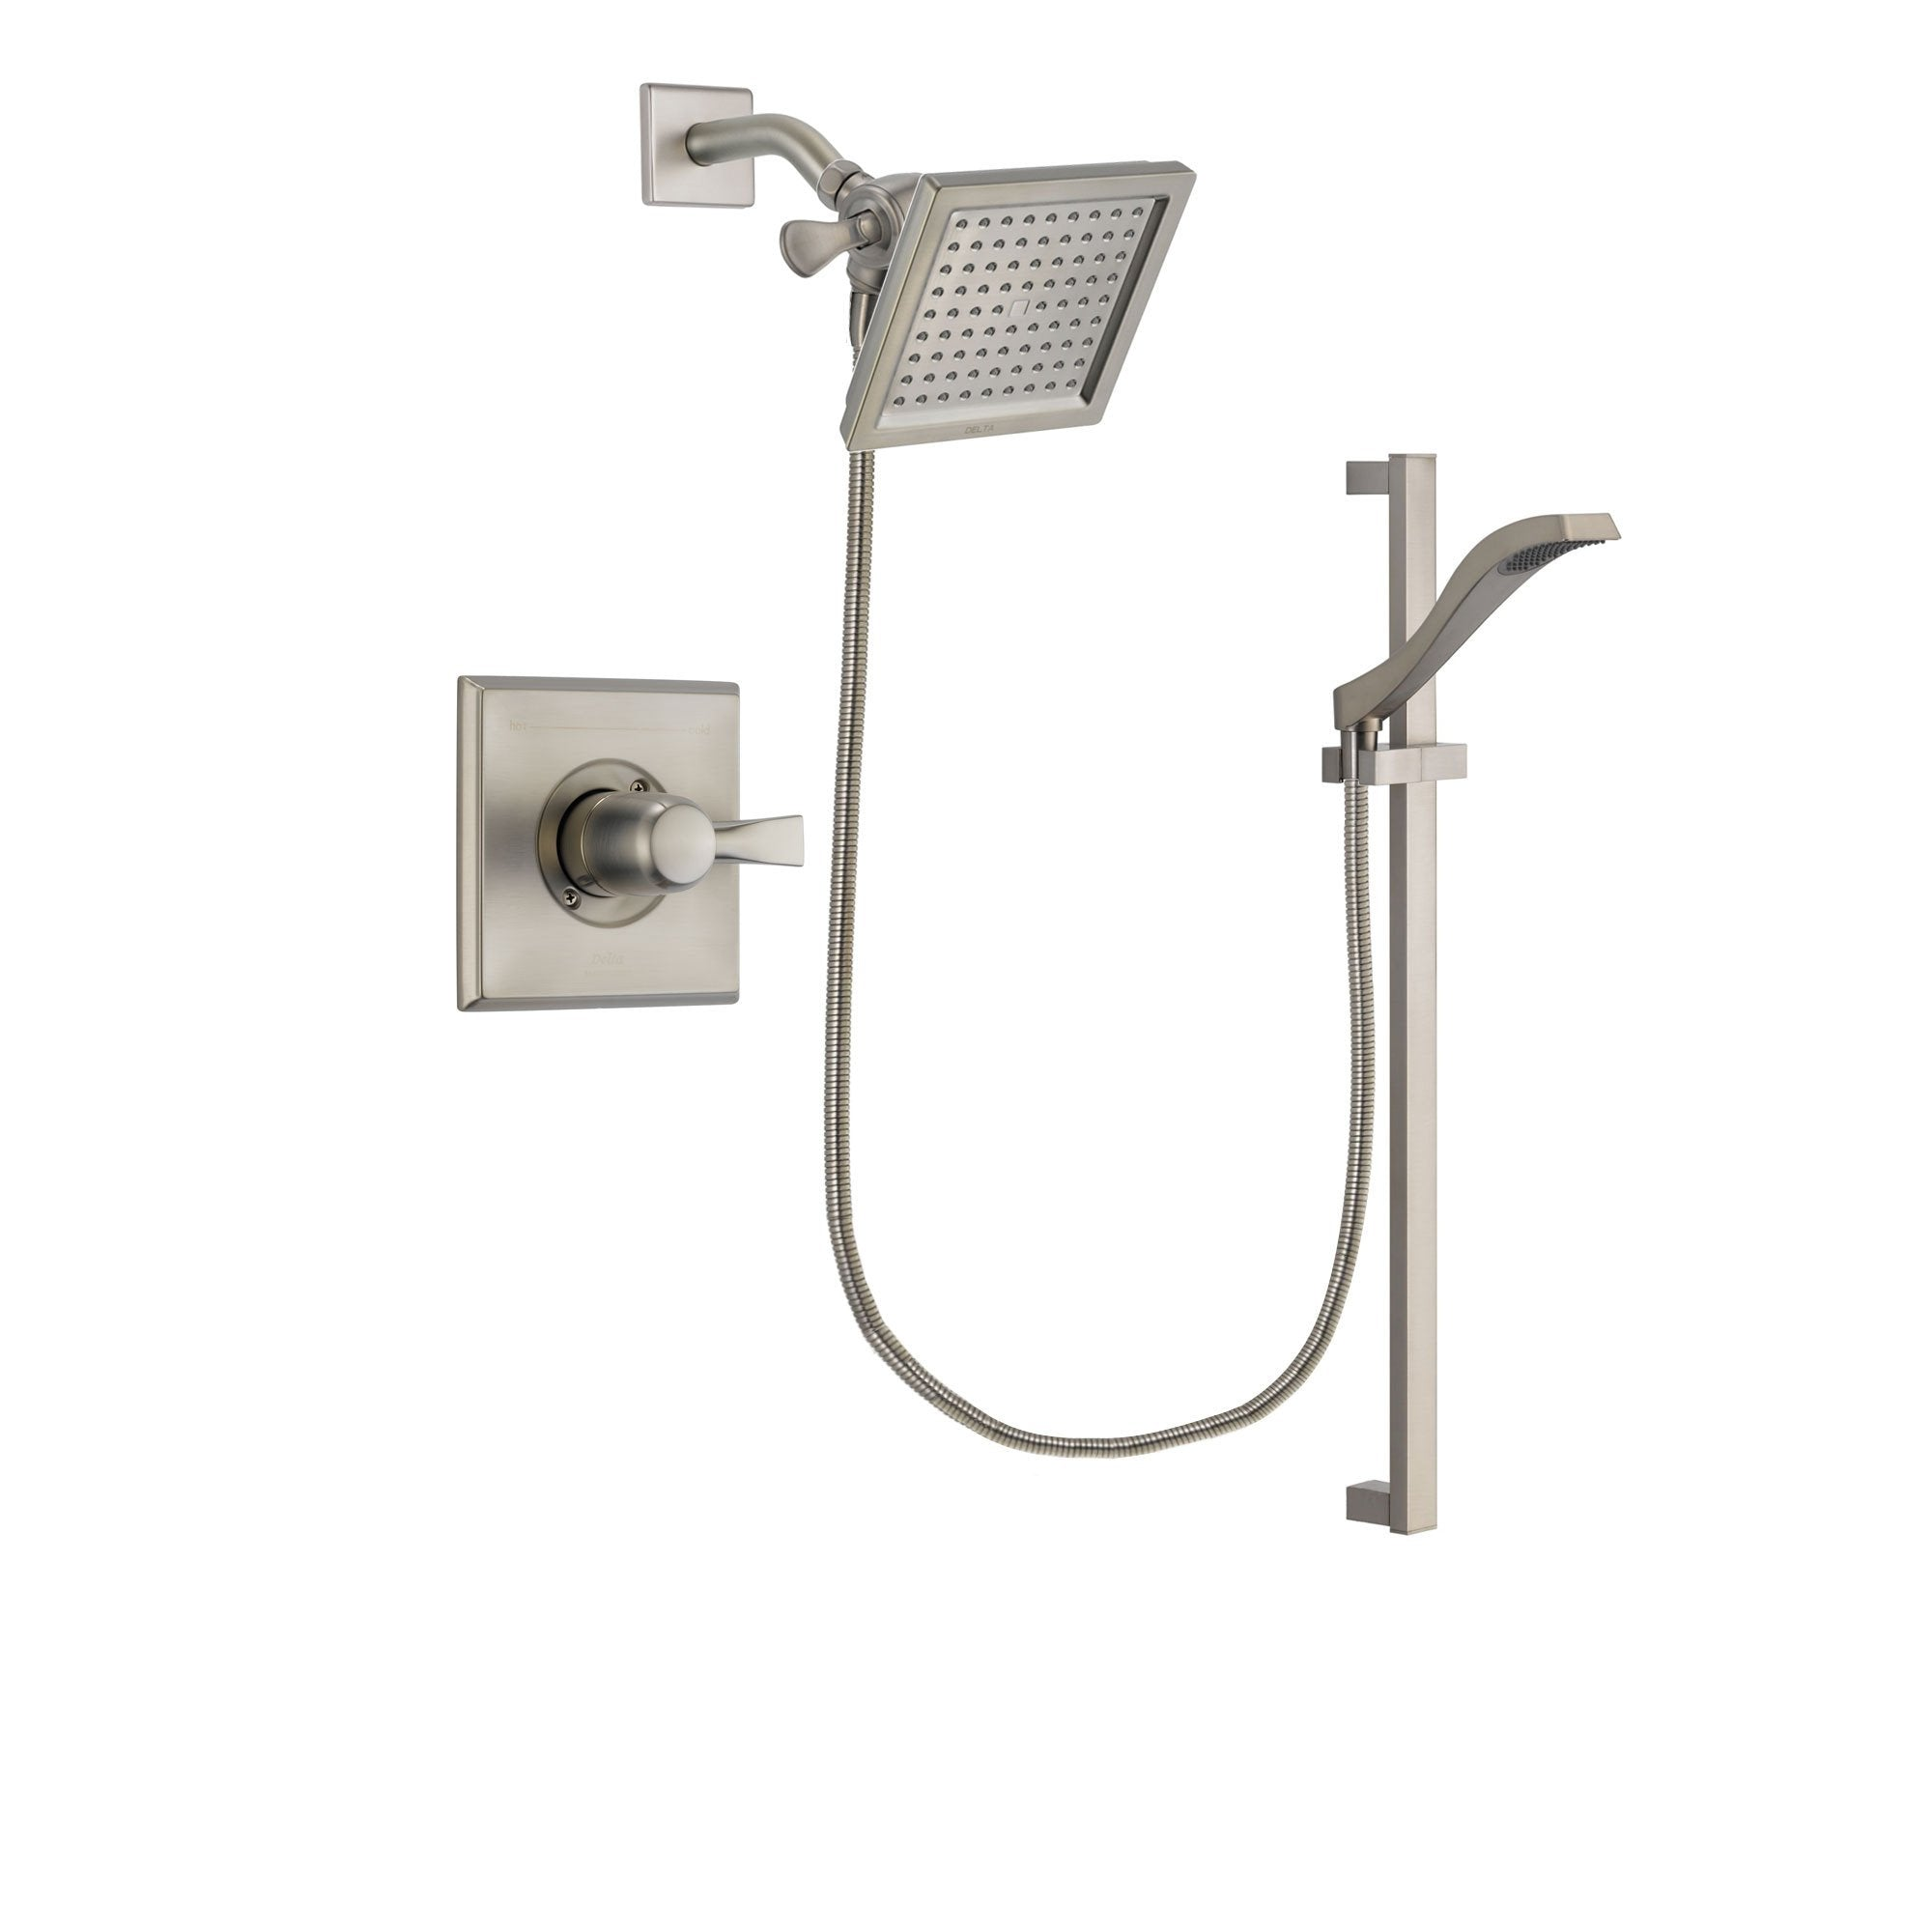 Delta Dryden Stainless Steel Finish Shower Faucet System w/ Hand Spray DSP2244V